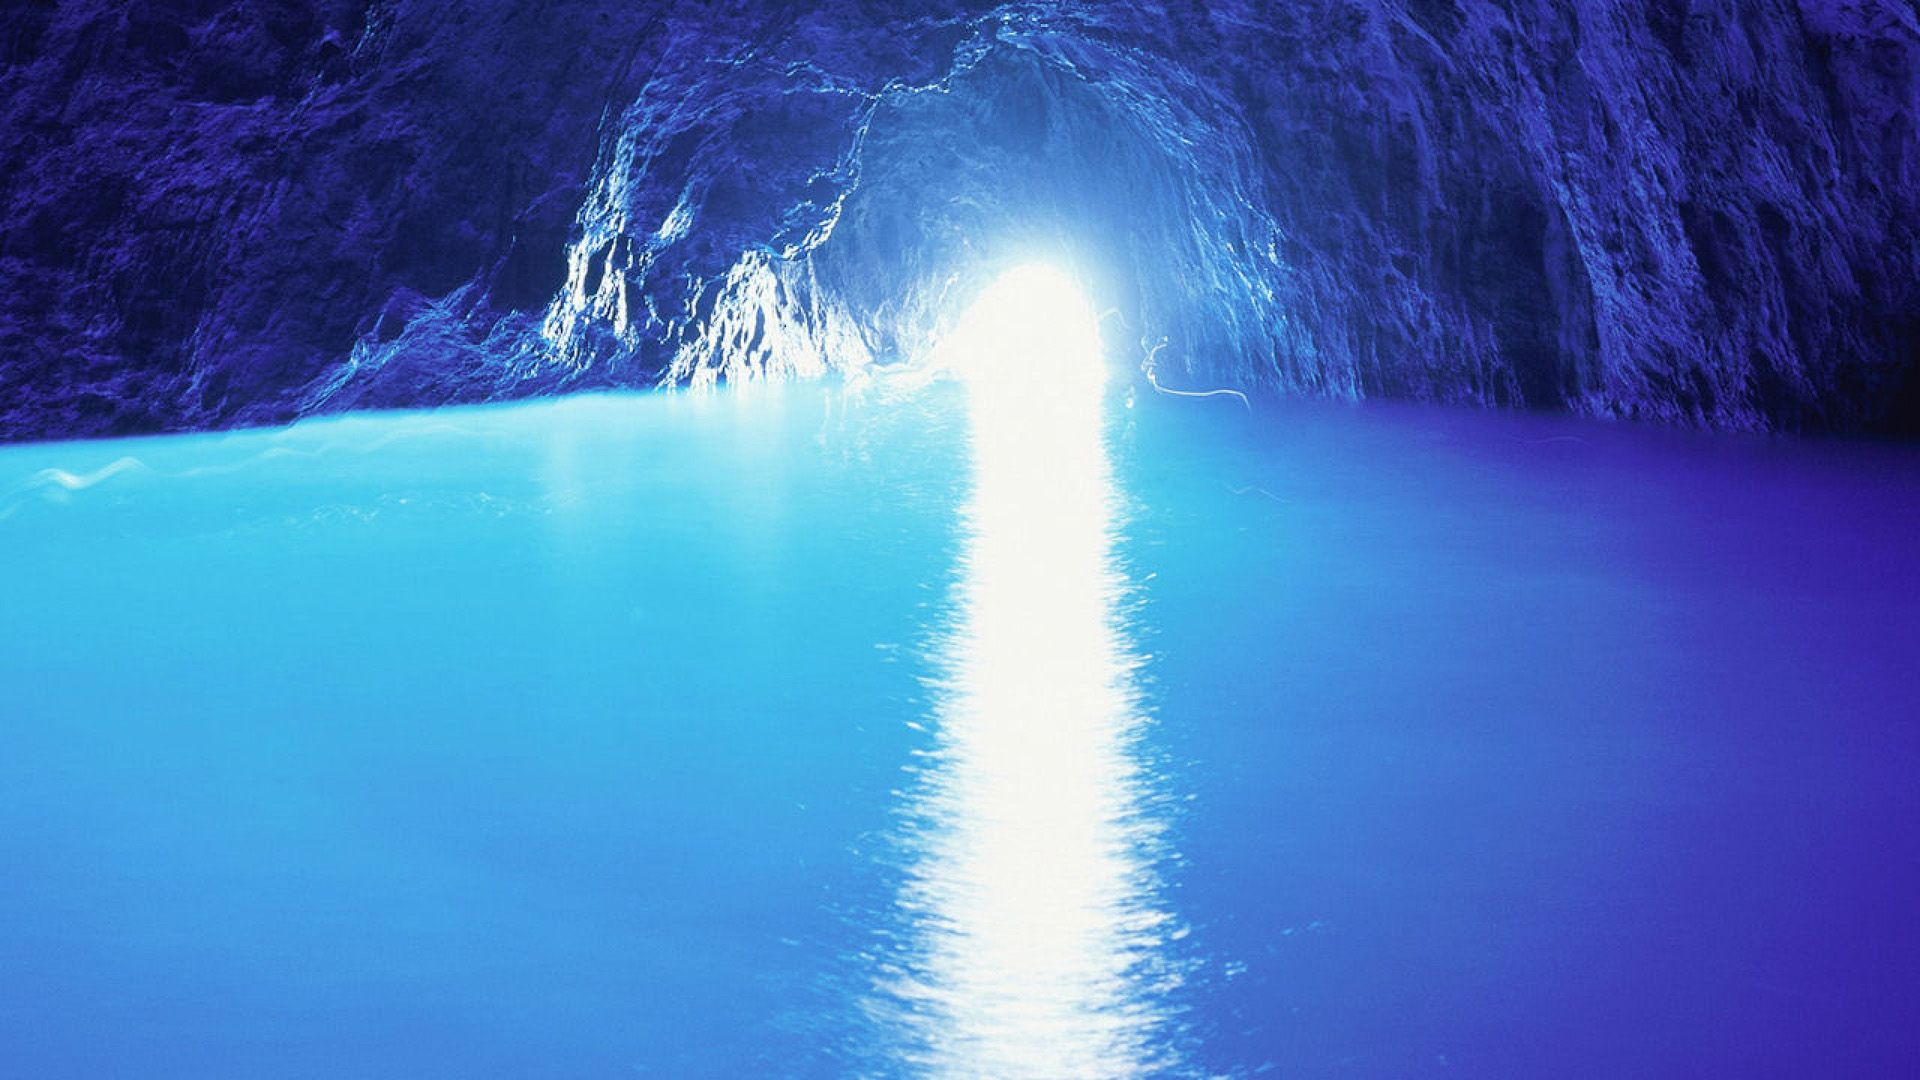 Cave background picture hd